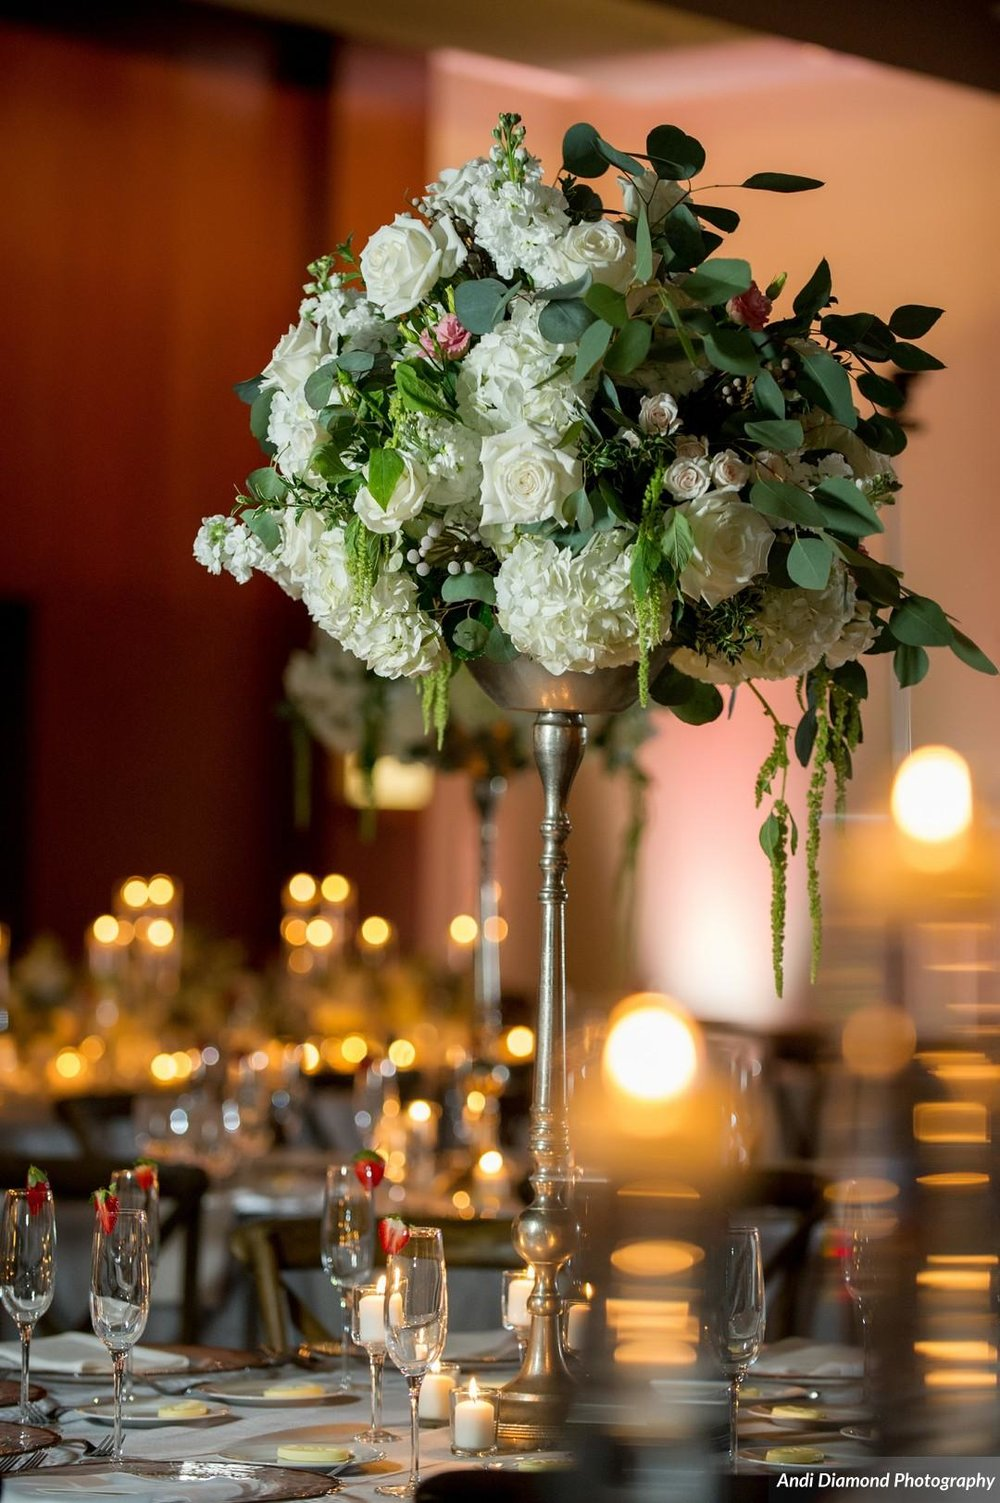 A mix of towering florals and candlelight with the natural color scheme created a perfect blend of sophistication and simplicity.